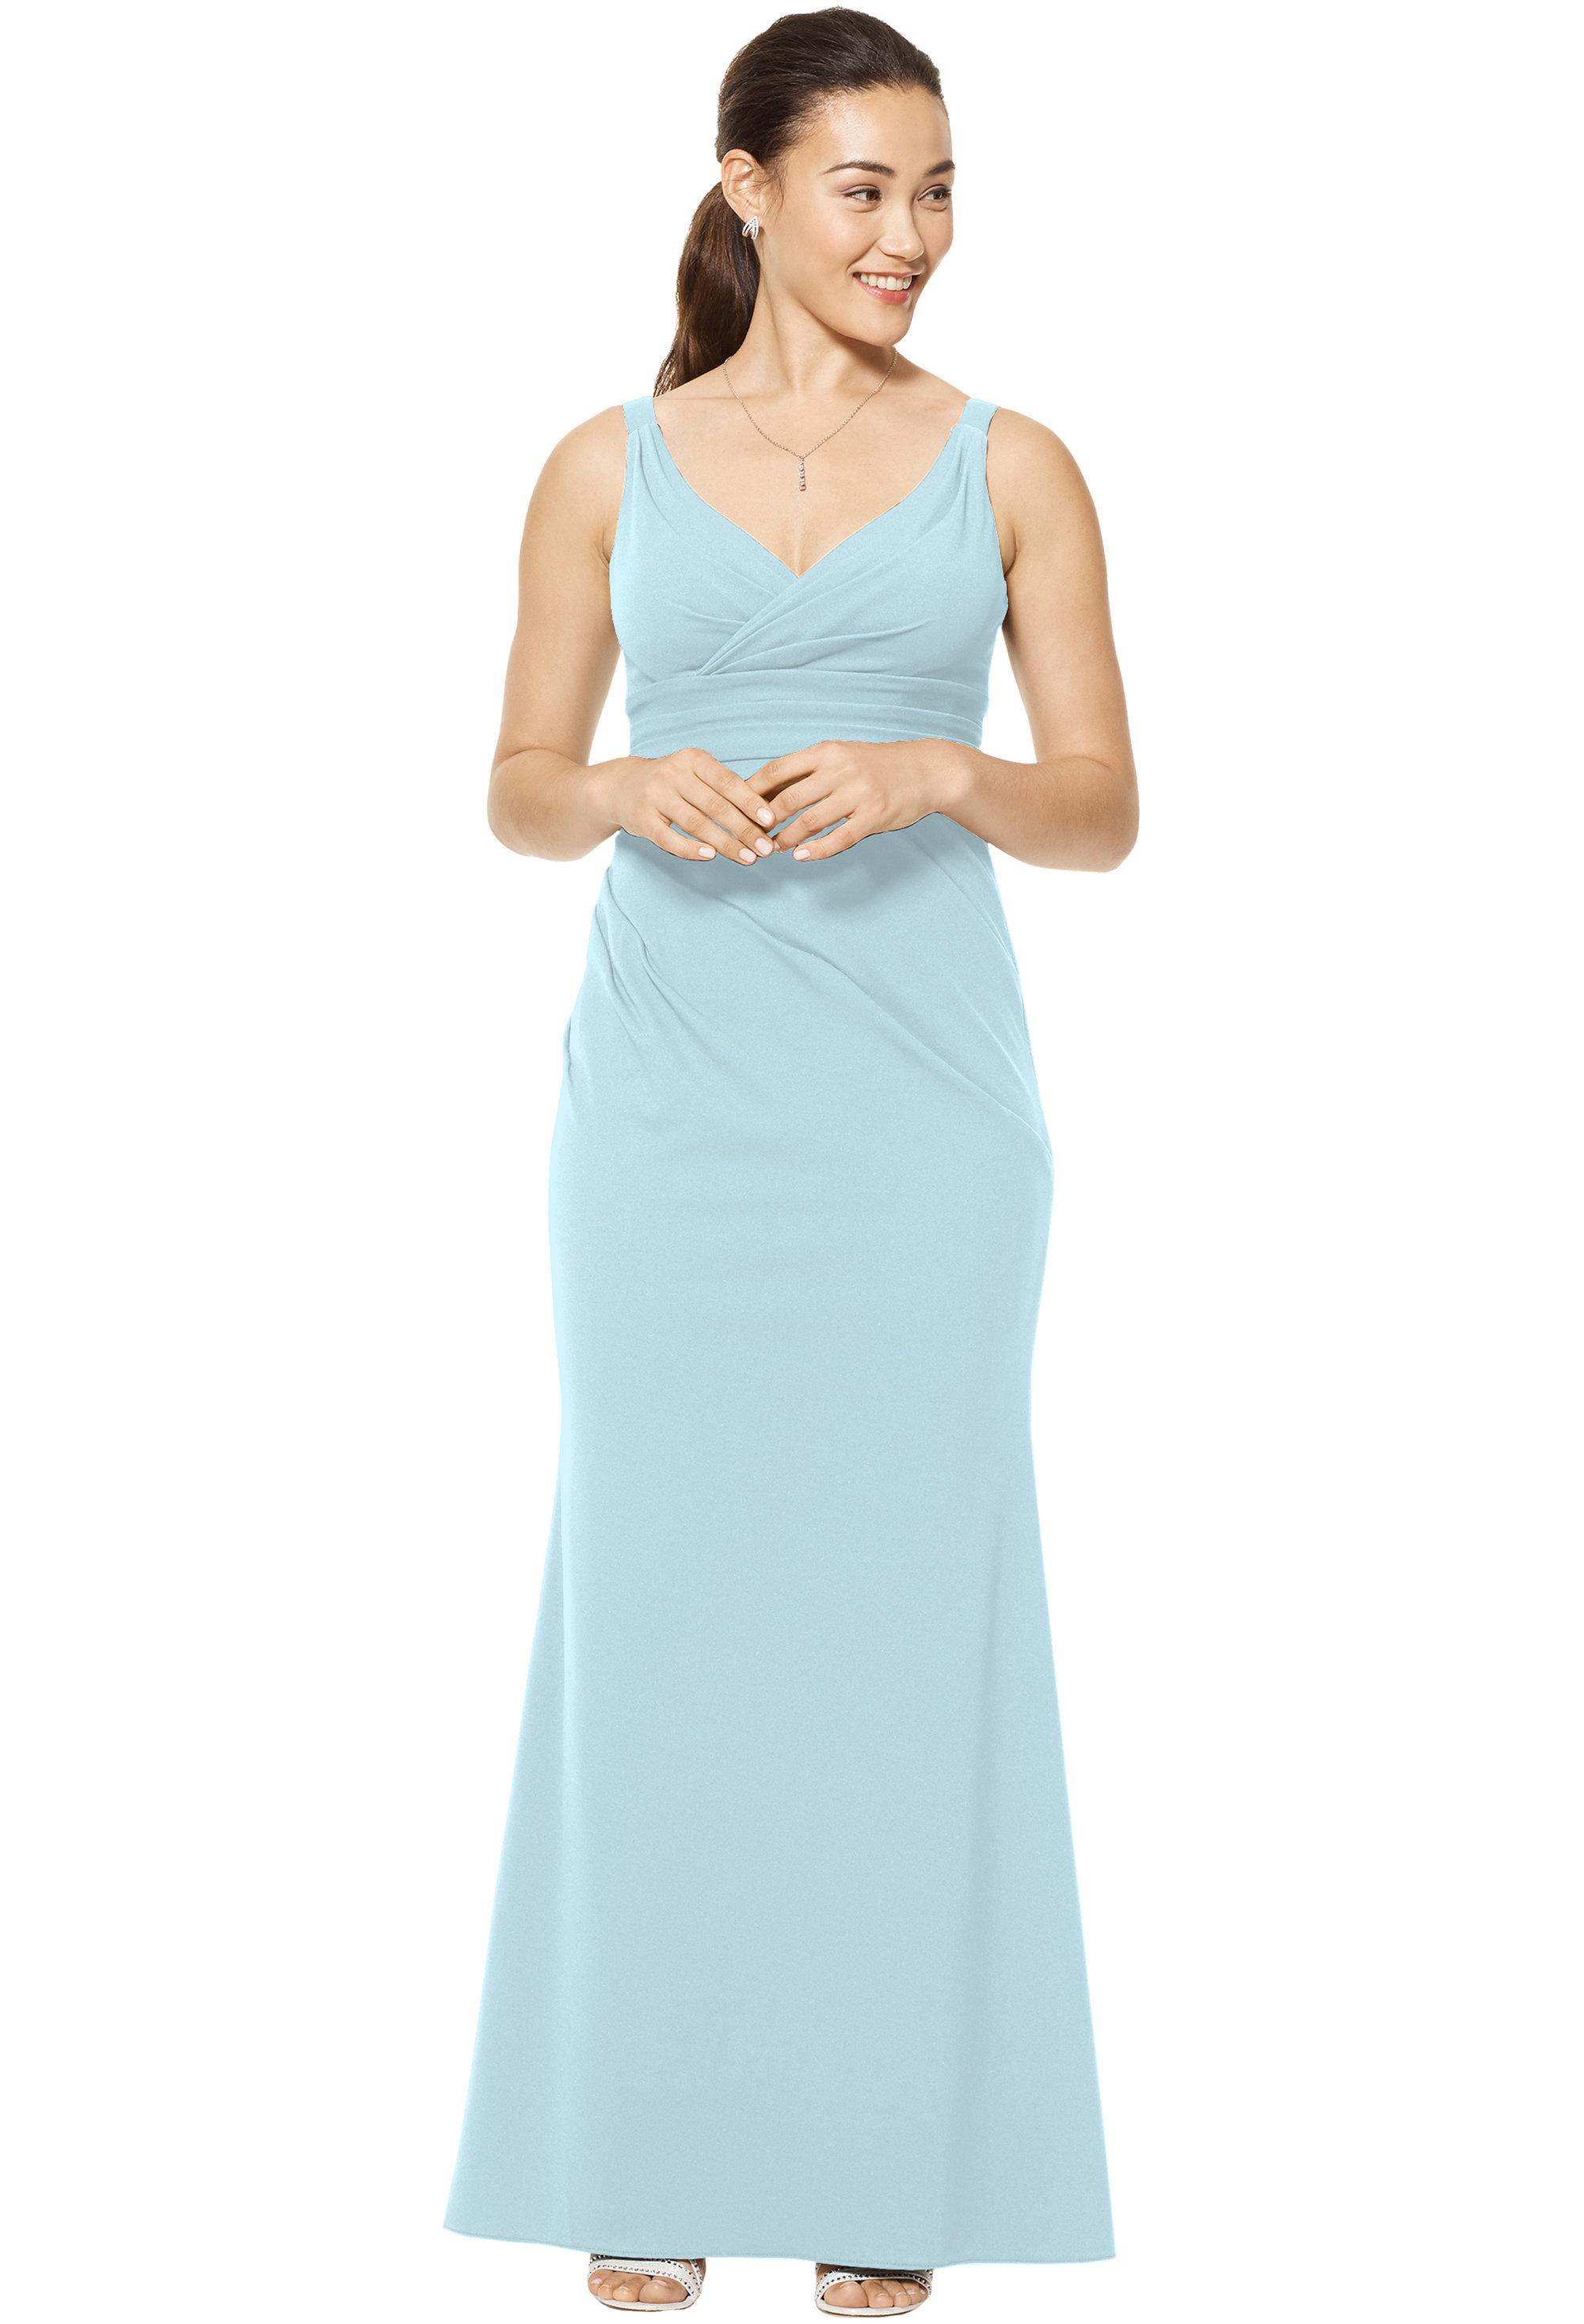 Bill Levkoff PALE BLUE Stretch Crepe Sleeveless Mermaid Skirt gown, $220.00 Front